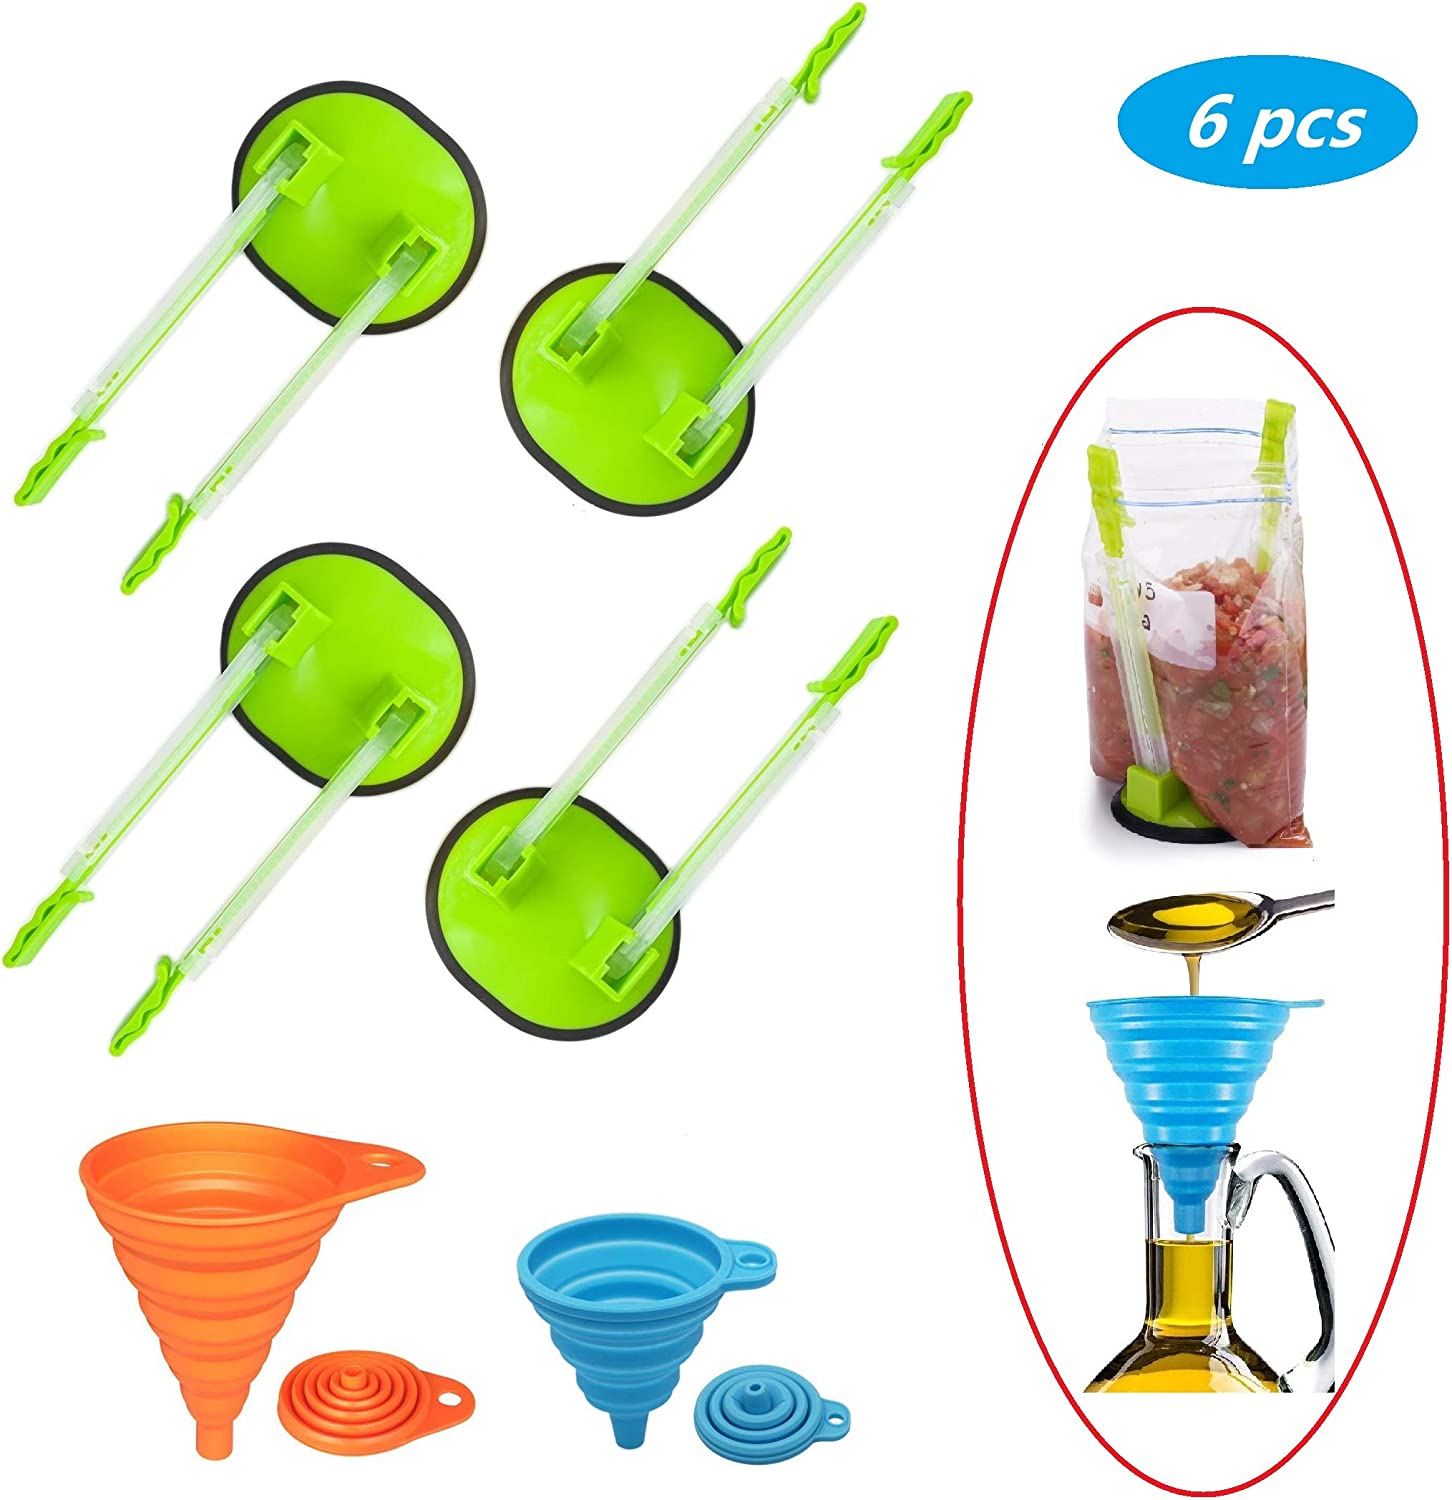 YIYATOO 4 pcs Baggy Rack and 2 pcs Folding Funnel, Clip Food Storage Bags Onto Holder, Best Opener for Freezer & Storage Baggie - Ideal Plastic Kitchen Gadget